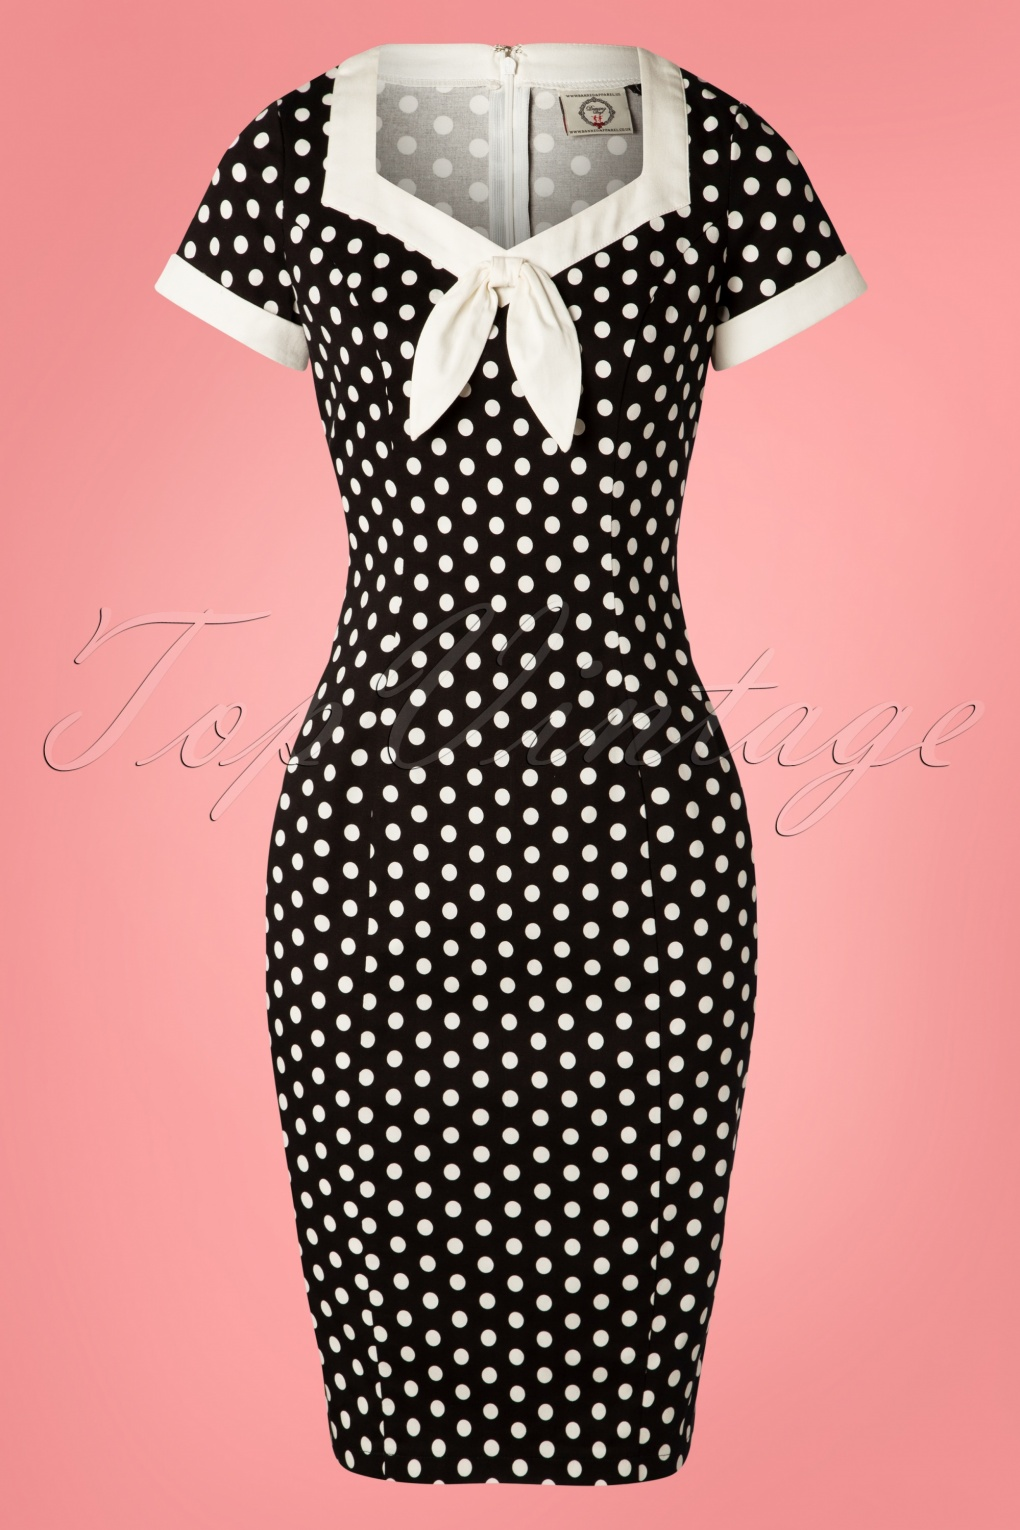 What Did Women Wear in the 1950s? 1950s Fashion Guide 50s Polka Love Wiggle Dress in Black £36.04 AT vintagedancer.com